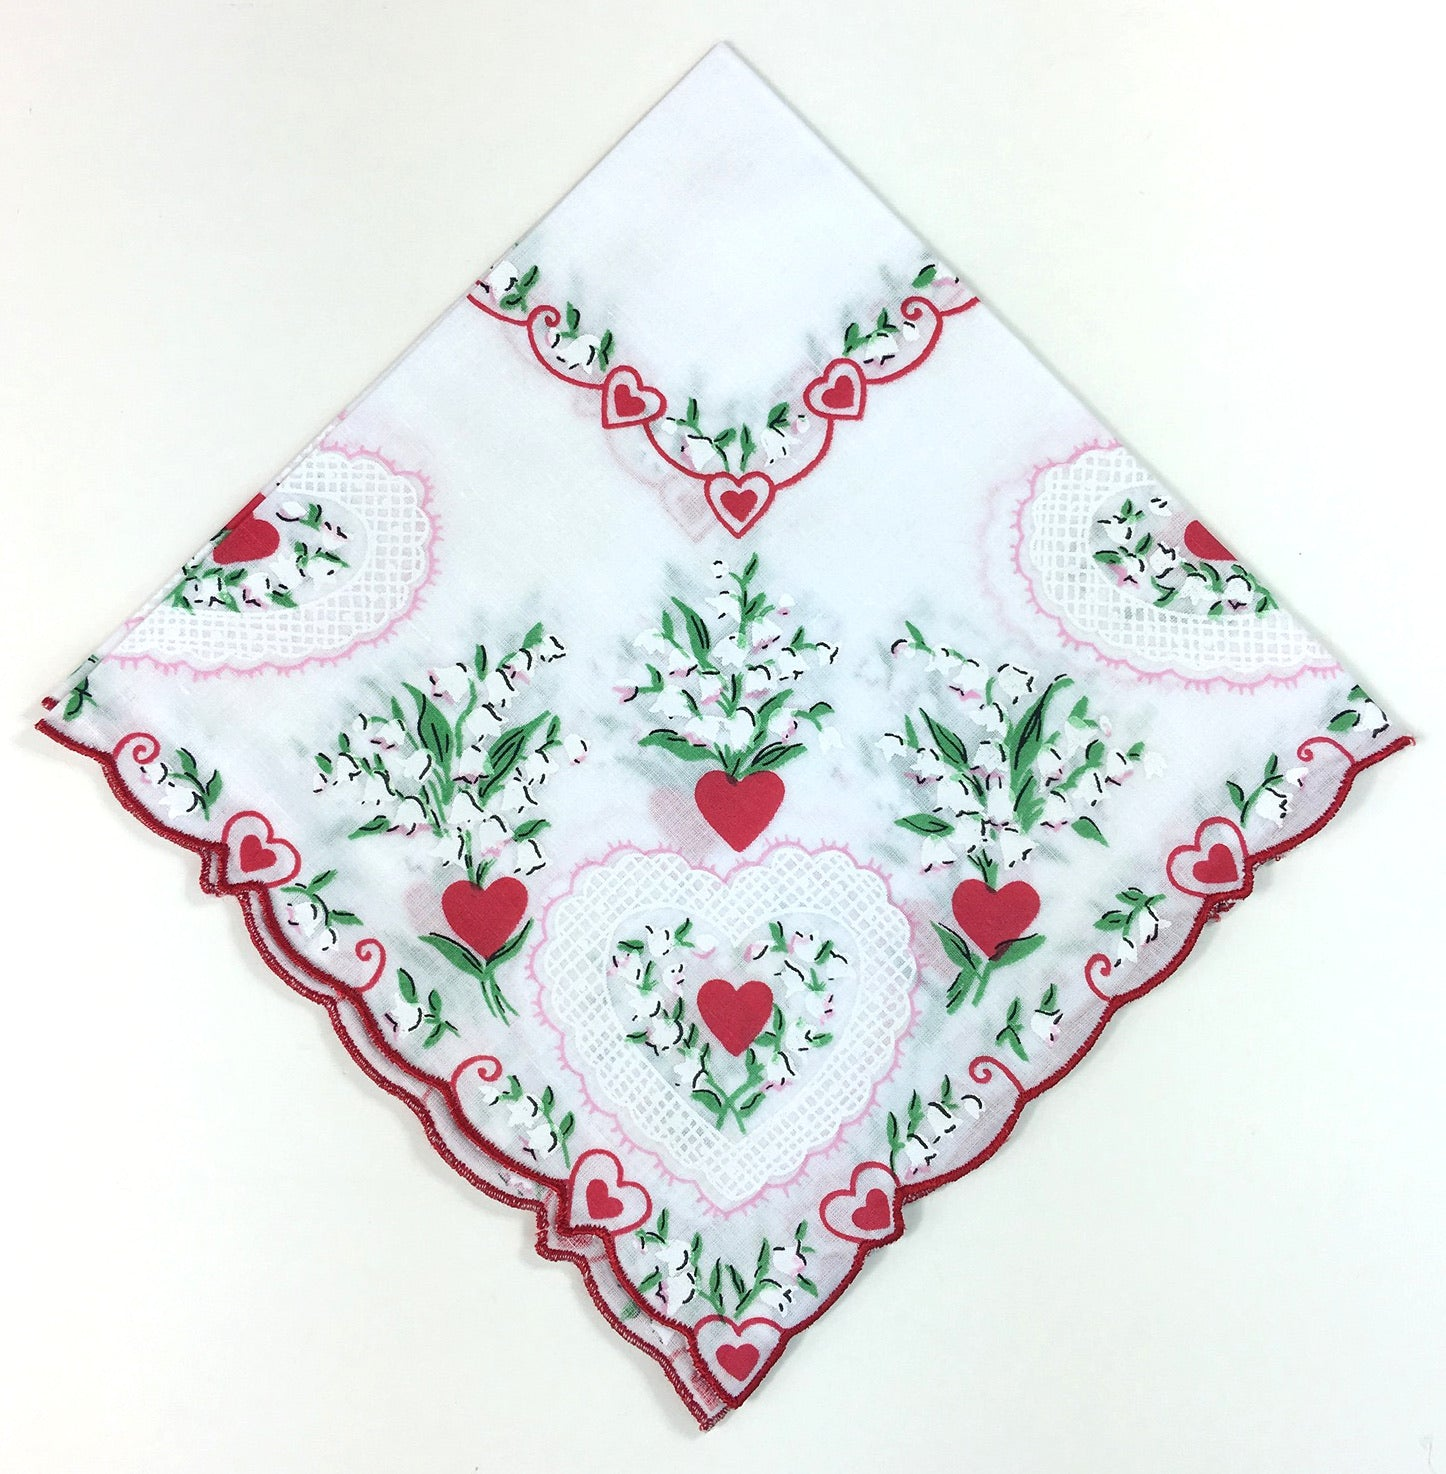 Hearts & Lillies Vintage Handkerchief Reproduction